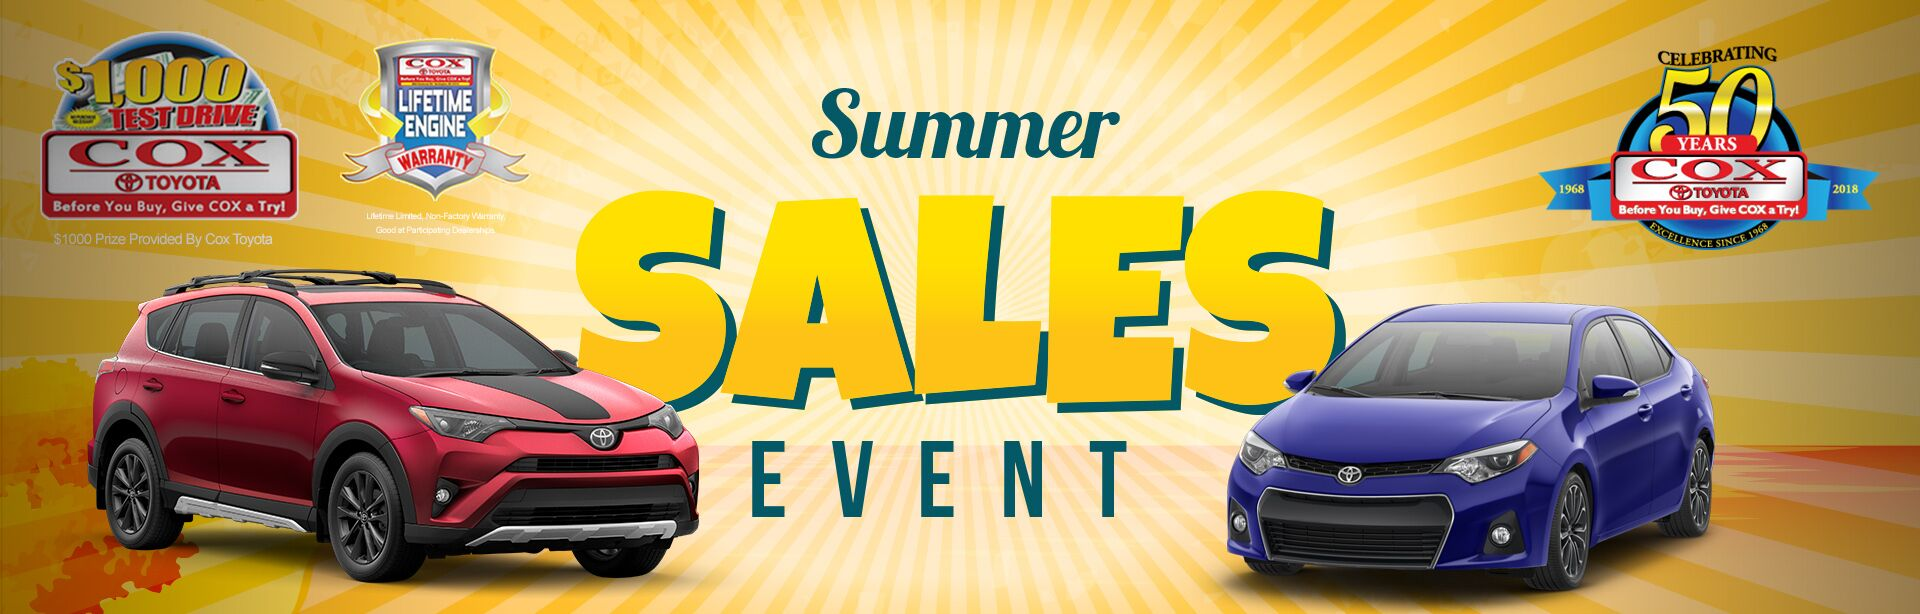 Summer Sales Event 2